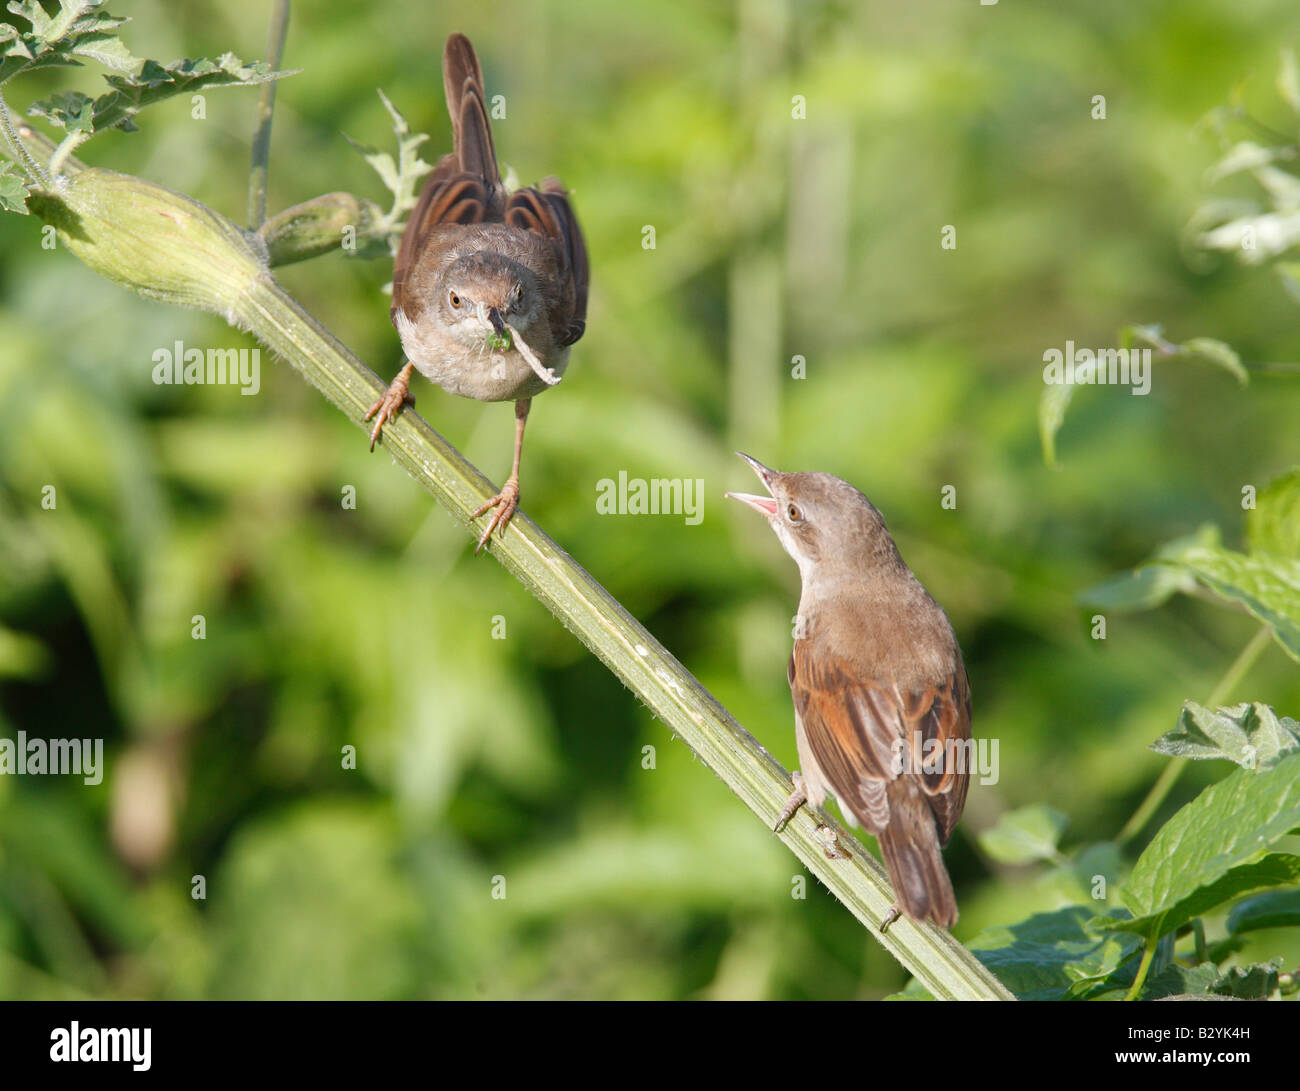 Female whitethroat begging for food from male - Stock Image